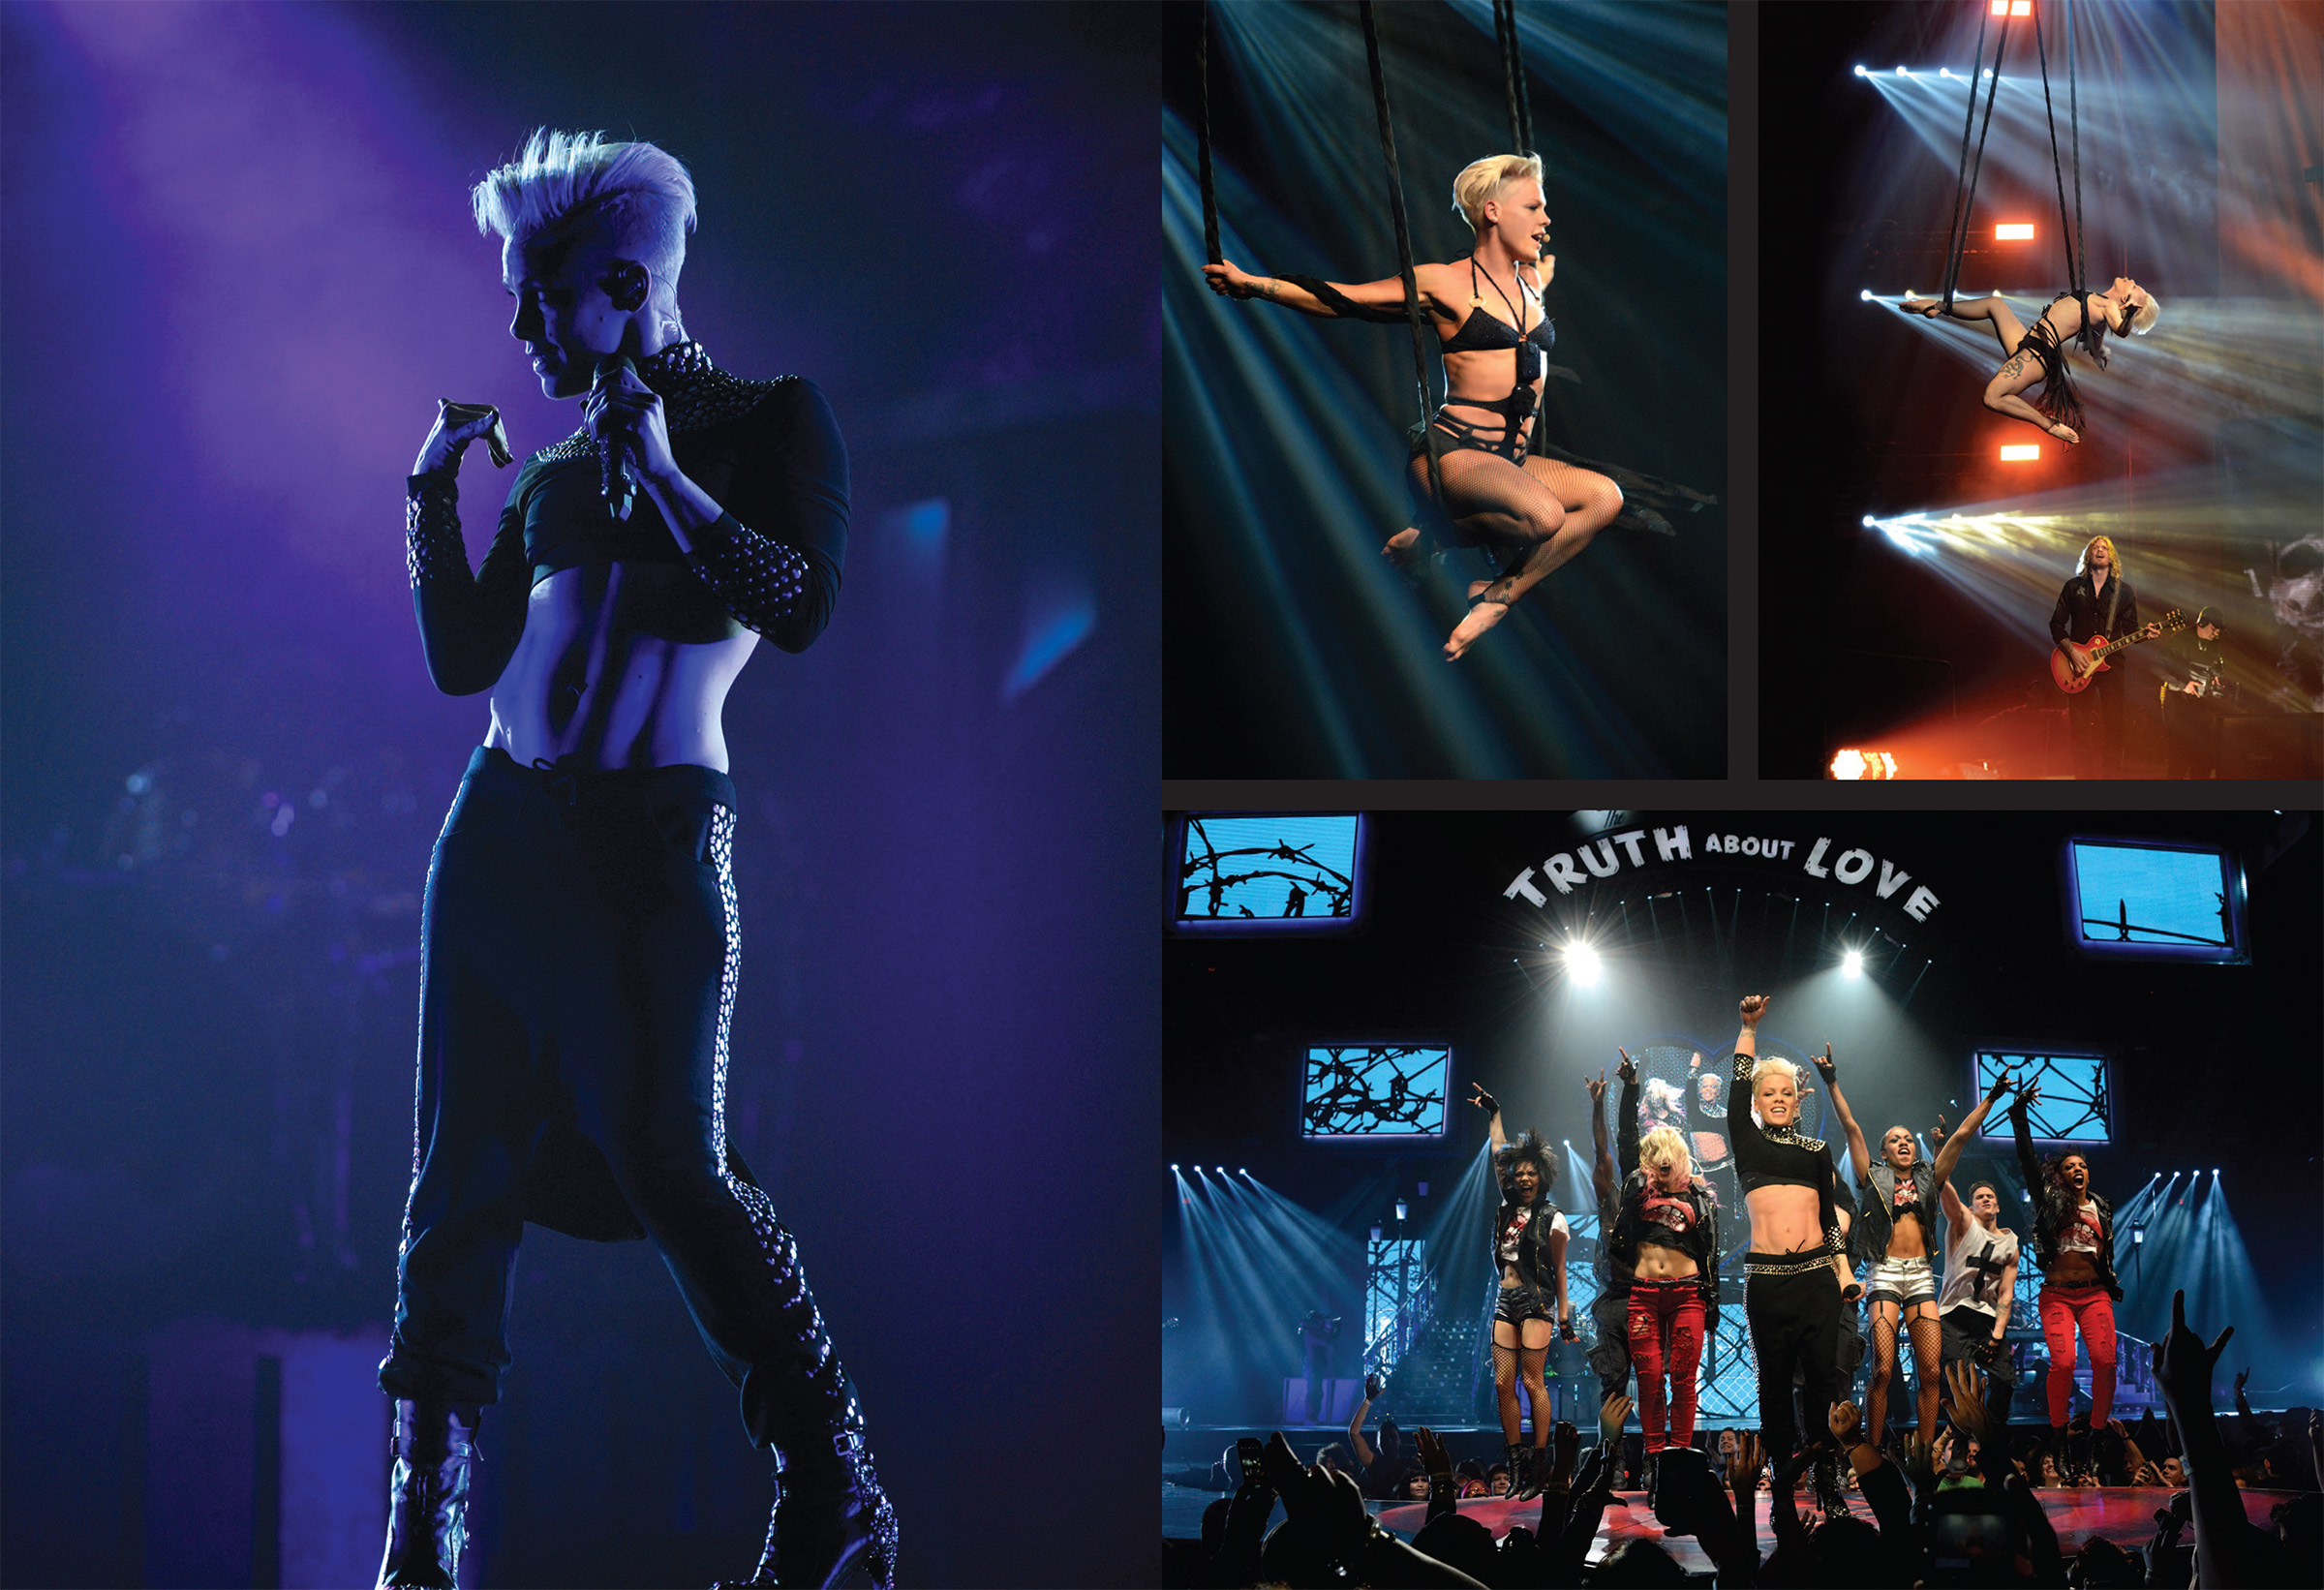 P!NK_TTAL_2013_Tourbook_spread_7.jpg